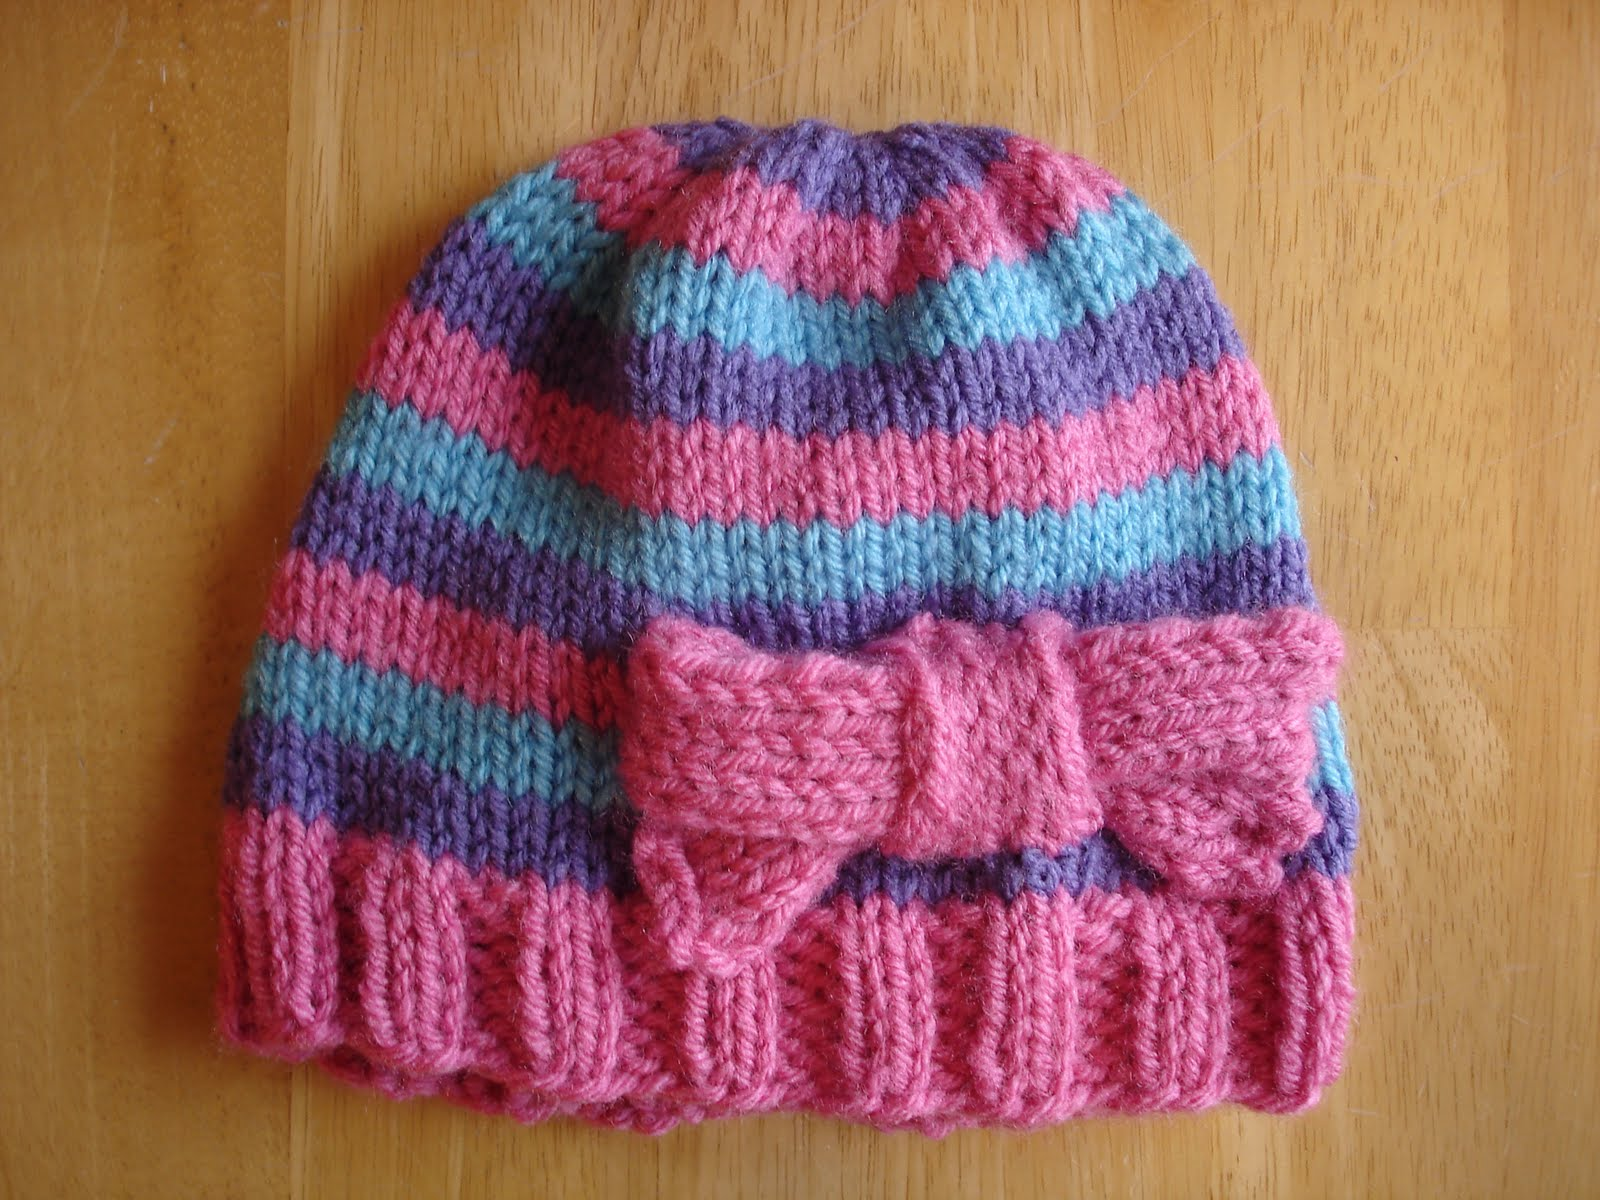 Free Knitting Patterns For Hats In The Round : Fiber Flux: Free Knitting Pattern...Super Pink Toddler Hat!